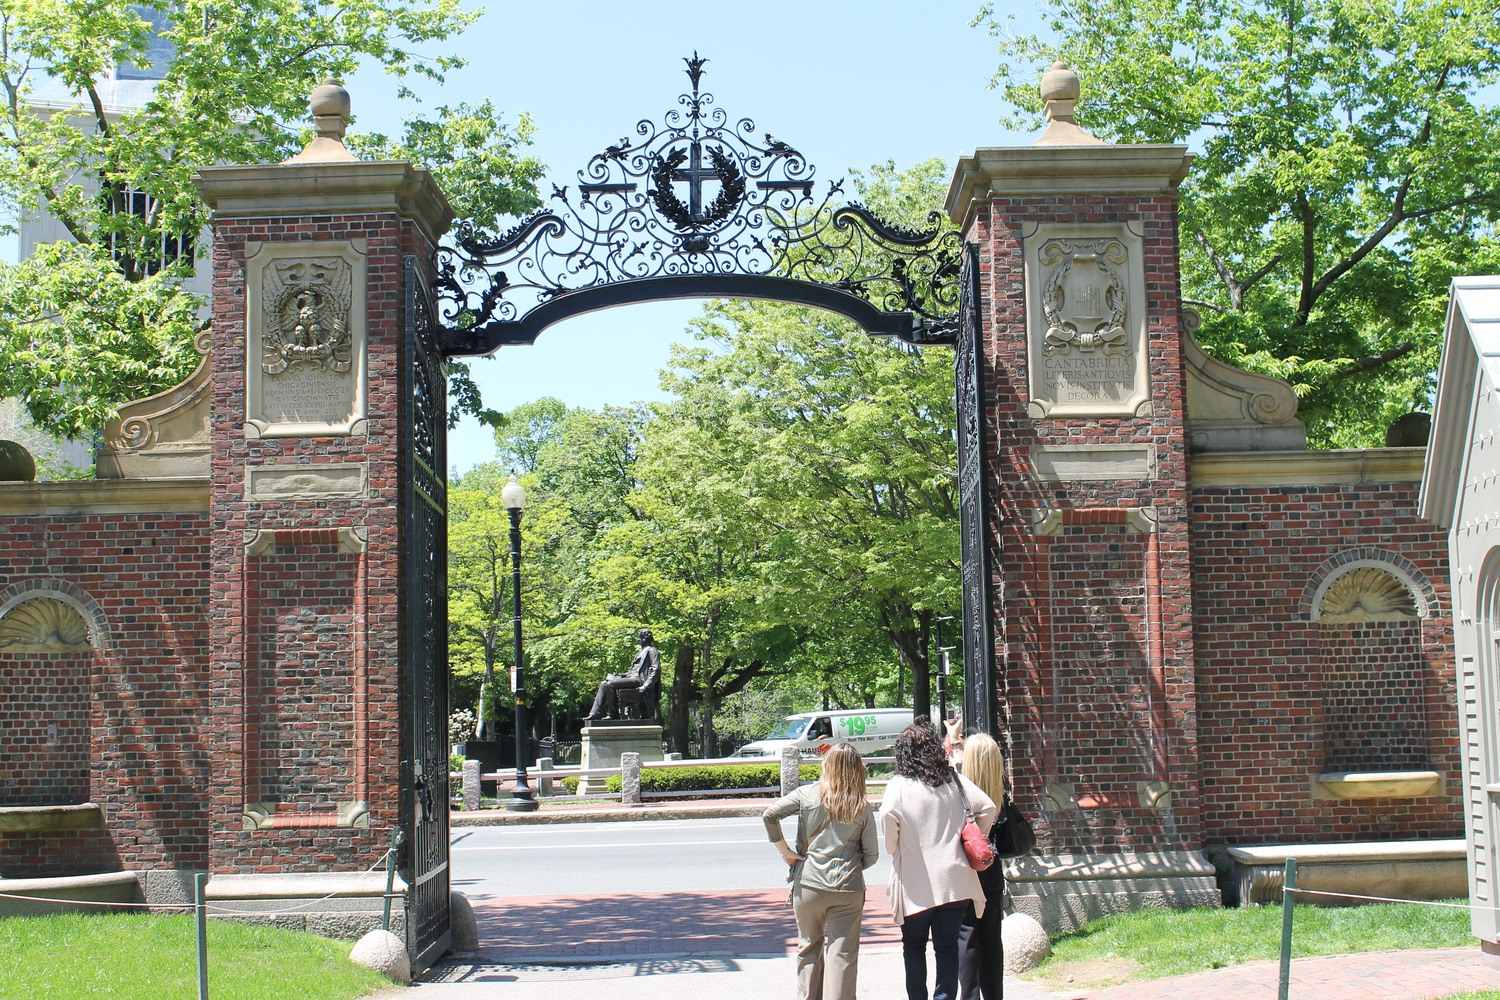 Low income students walk through the gates of an Ivy League school worried that they will not be able to fit in.